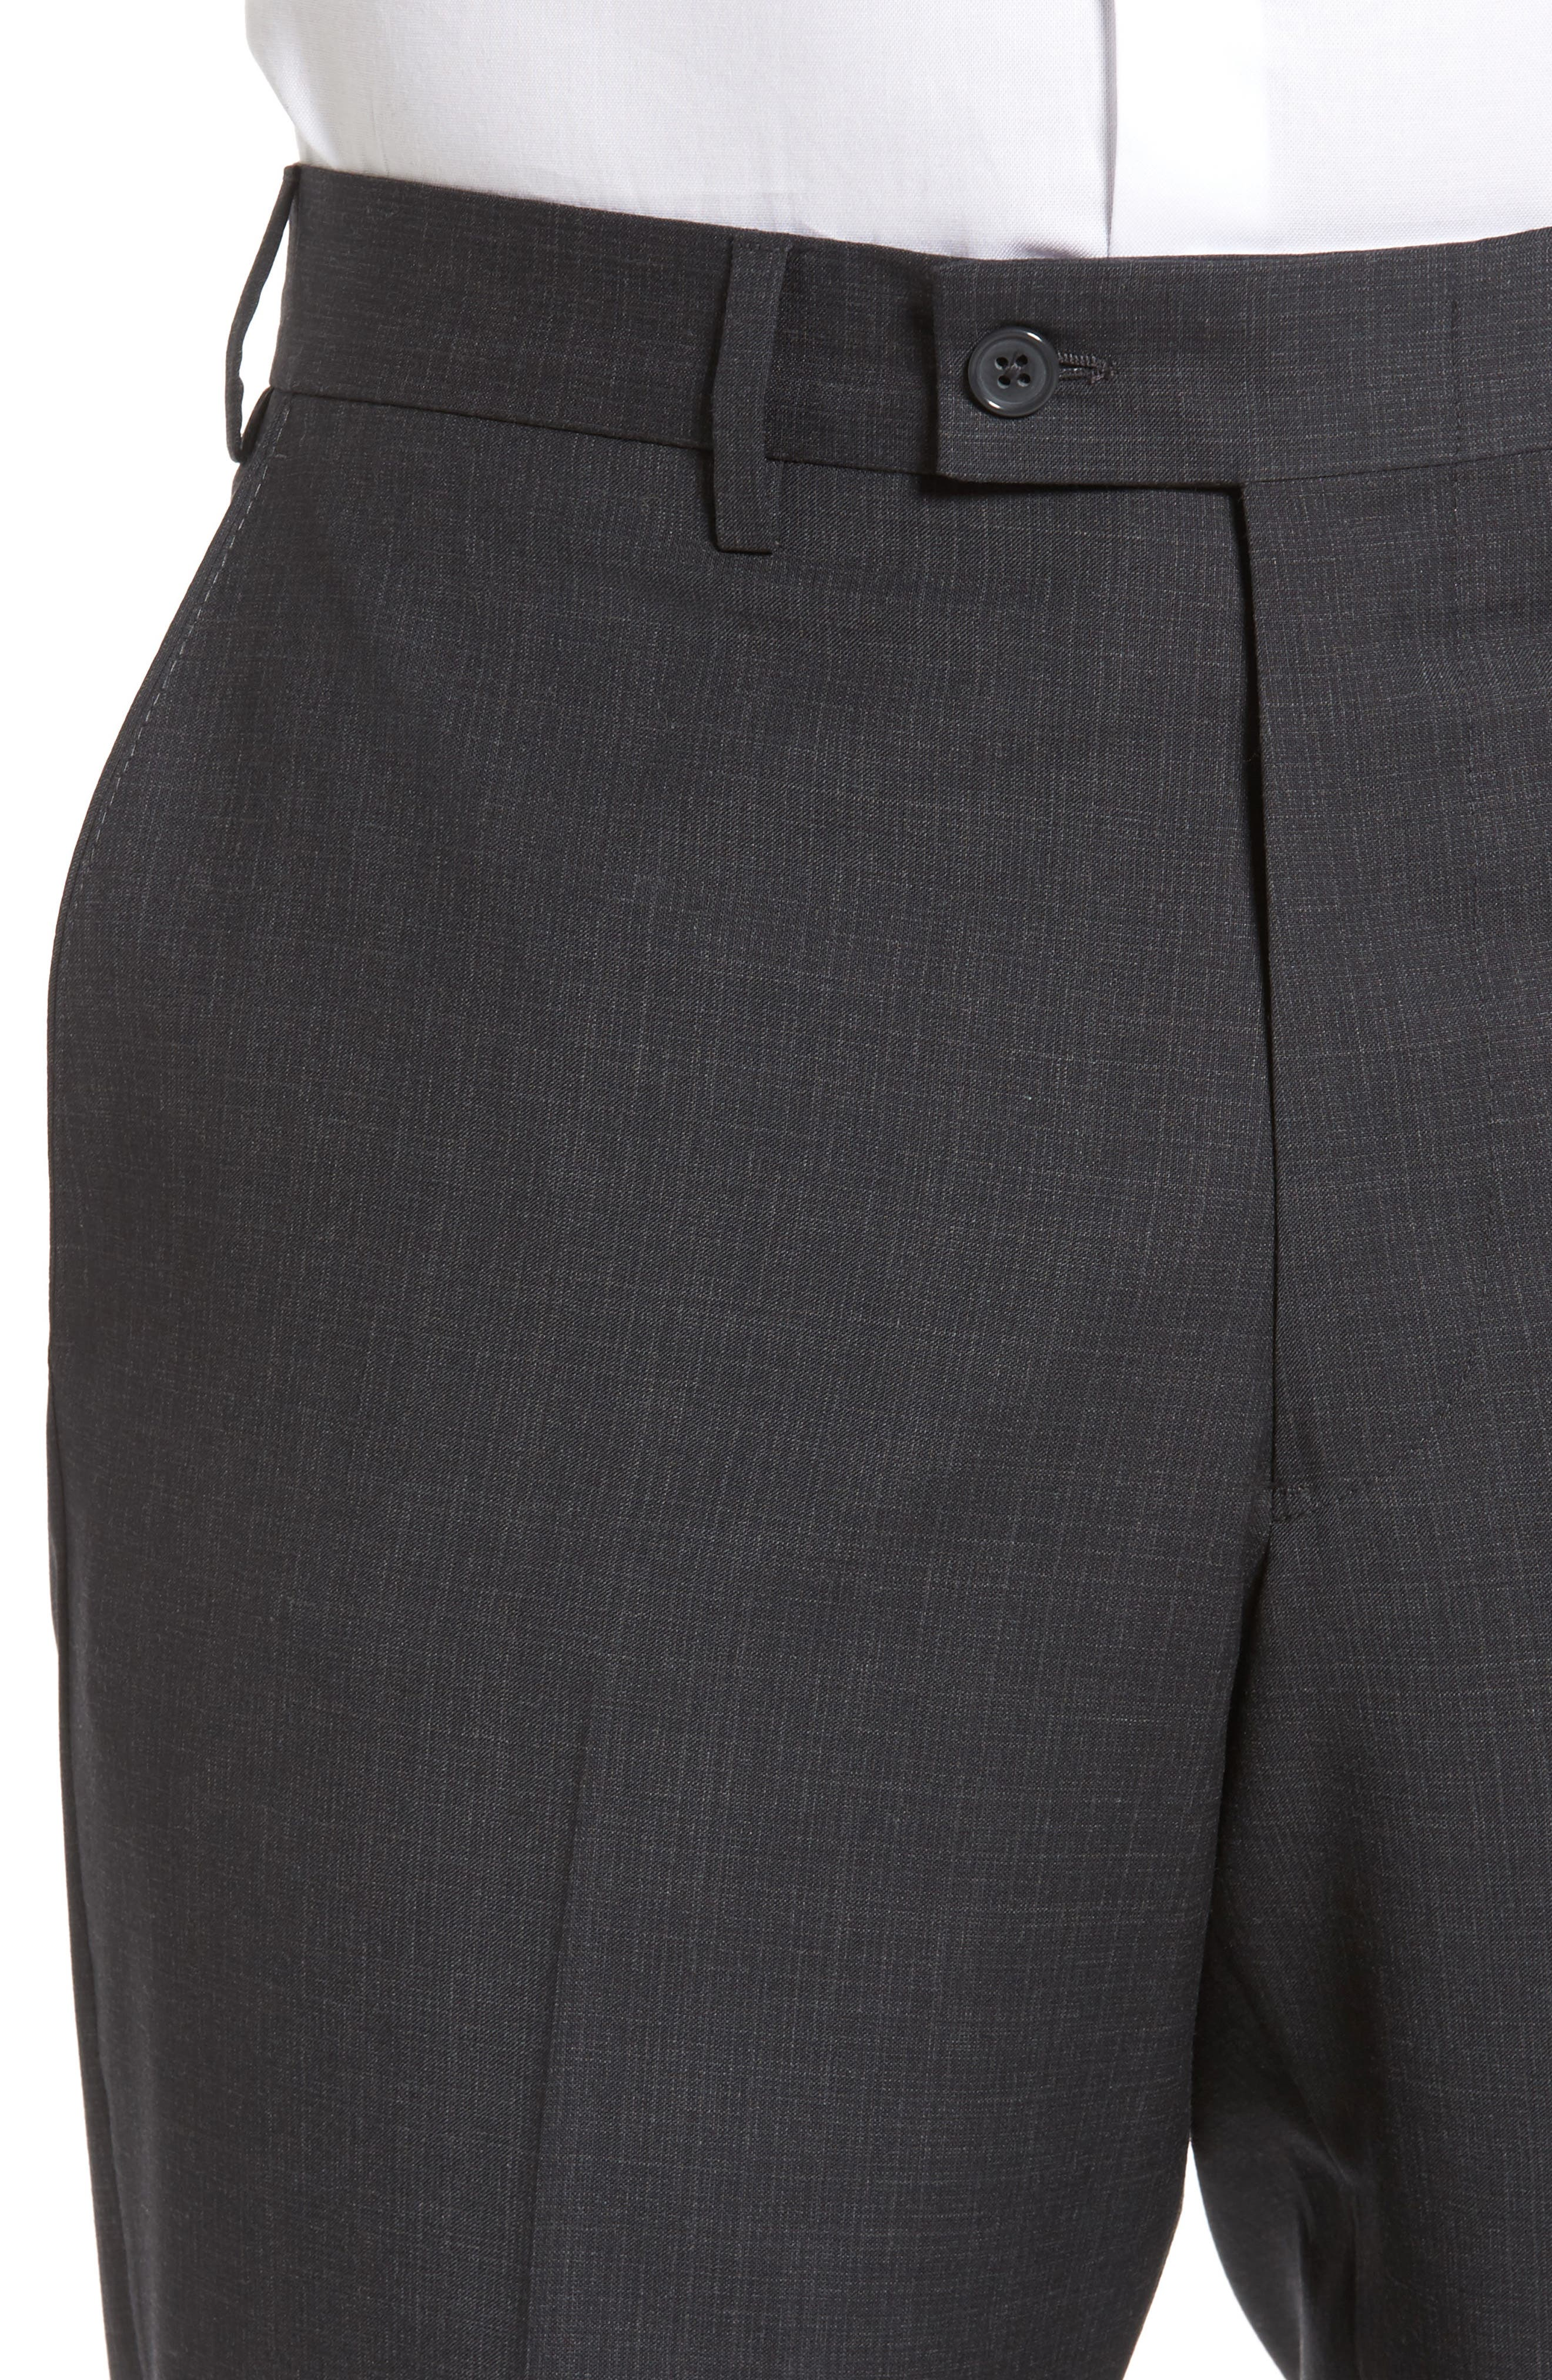 Flat Front Solid Wool Trousers,                             Alternate thumbnail 14, color,